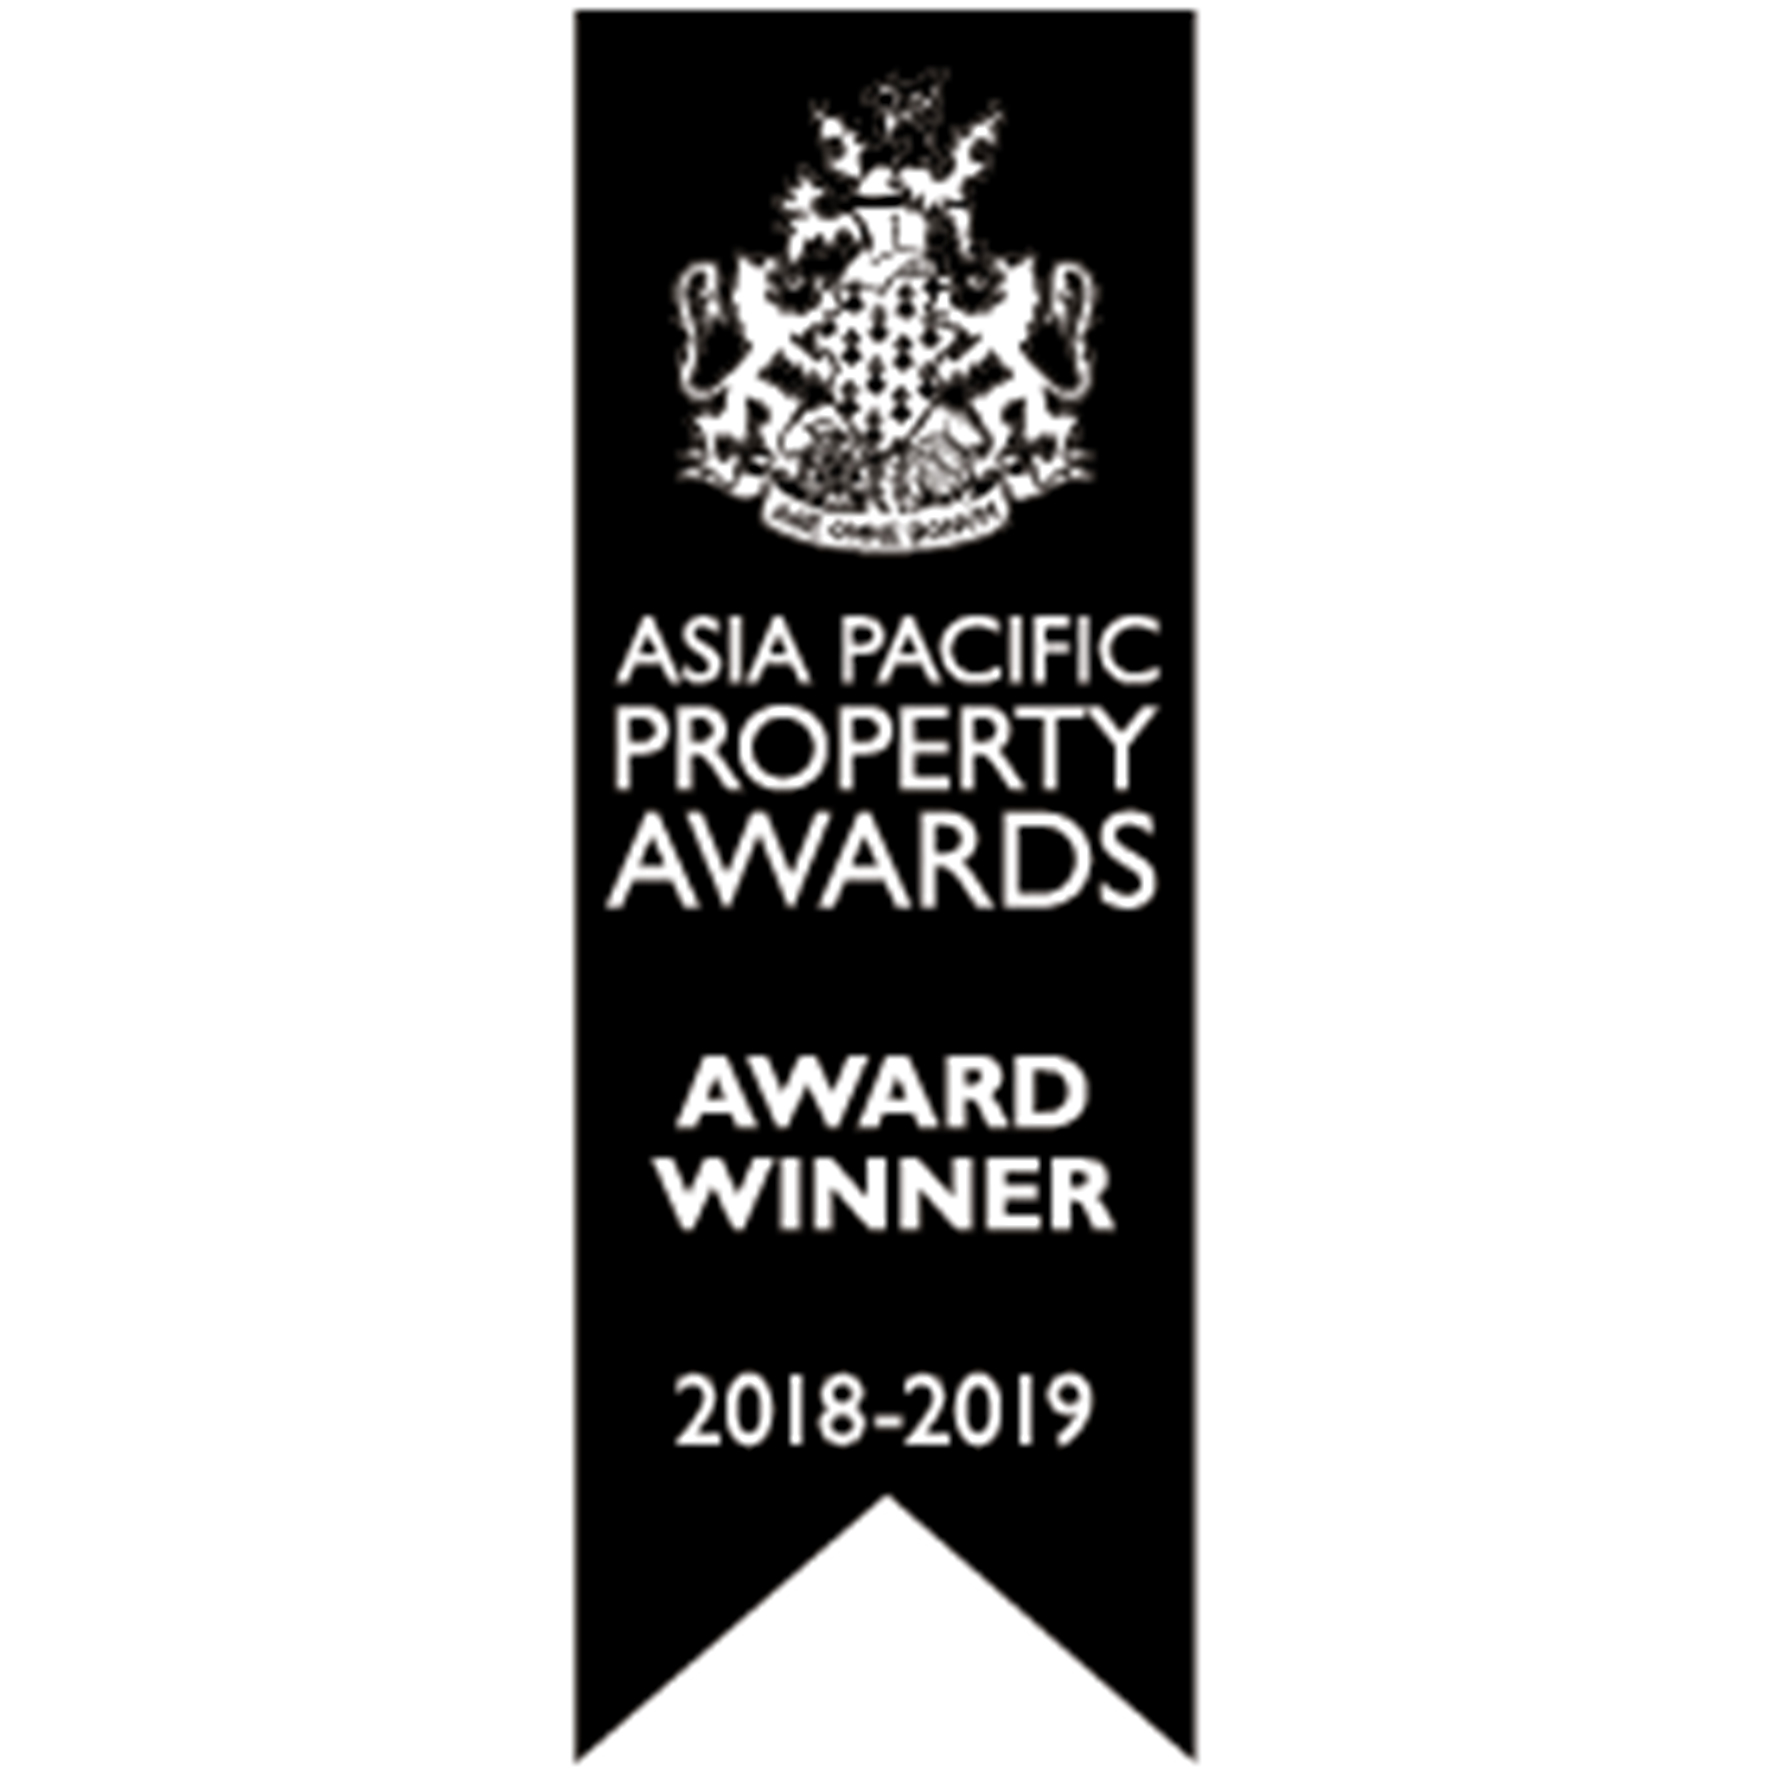 2018-2019 Asia Pacific Property Award - Interior Design Apartment category for Macau(澳门住宅大奖)